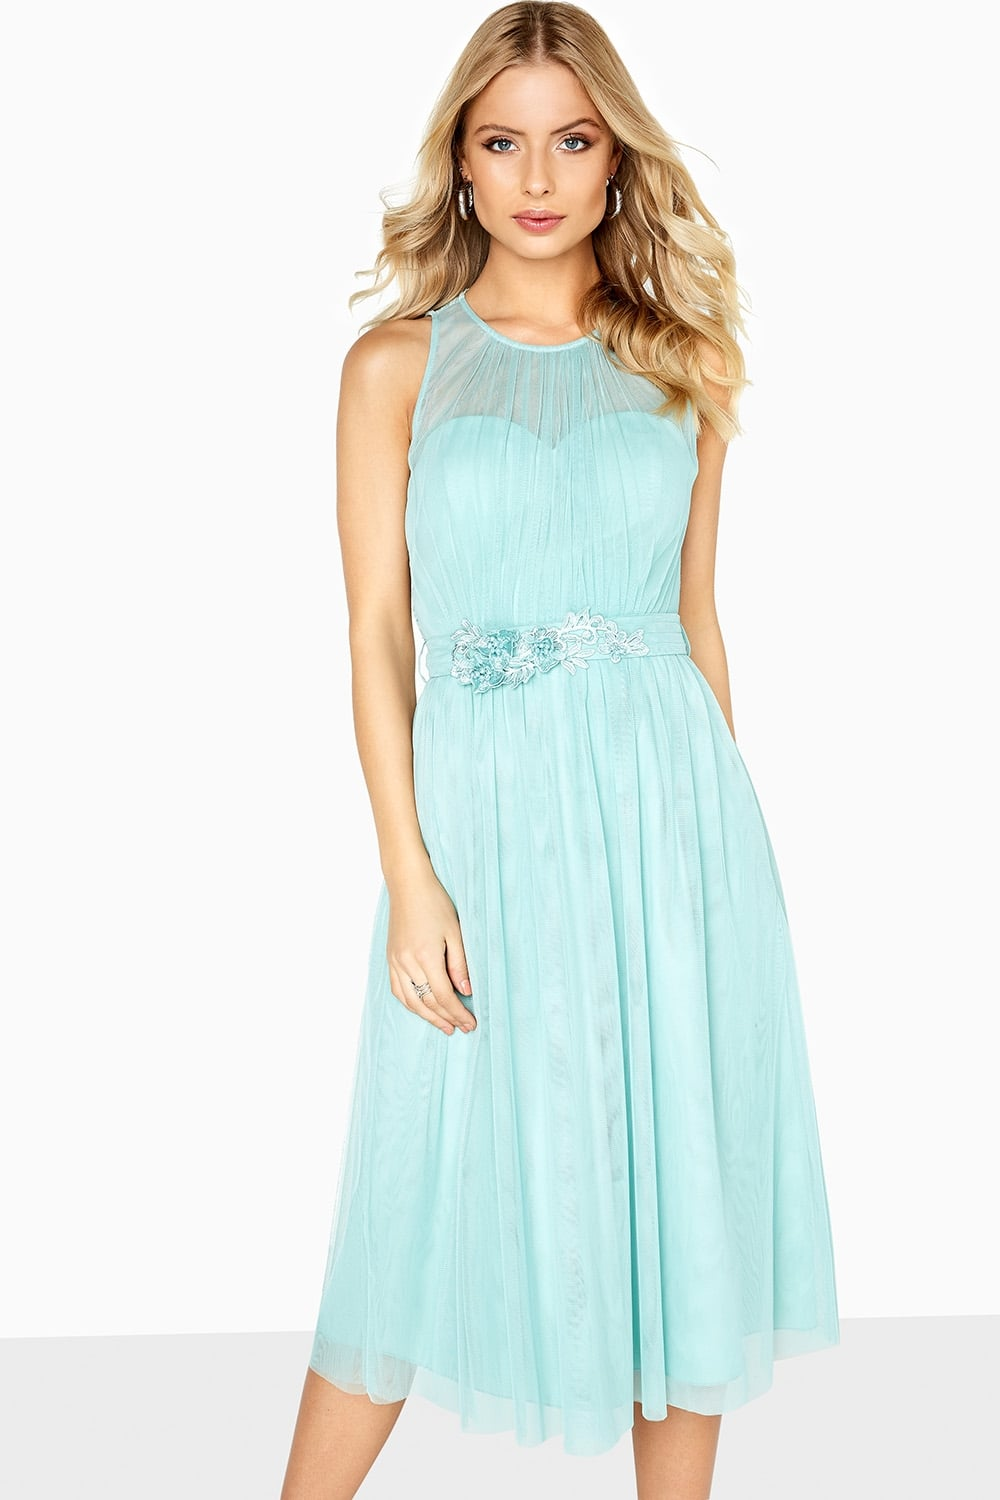 677be8ac6fa0 Spearmint Lace Prom Dress - from Little Mistress UK